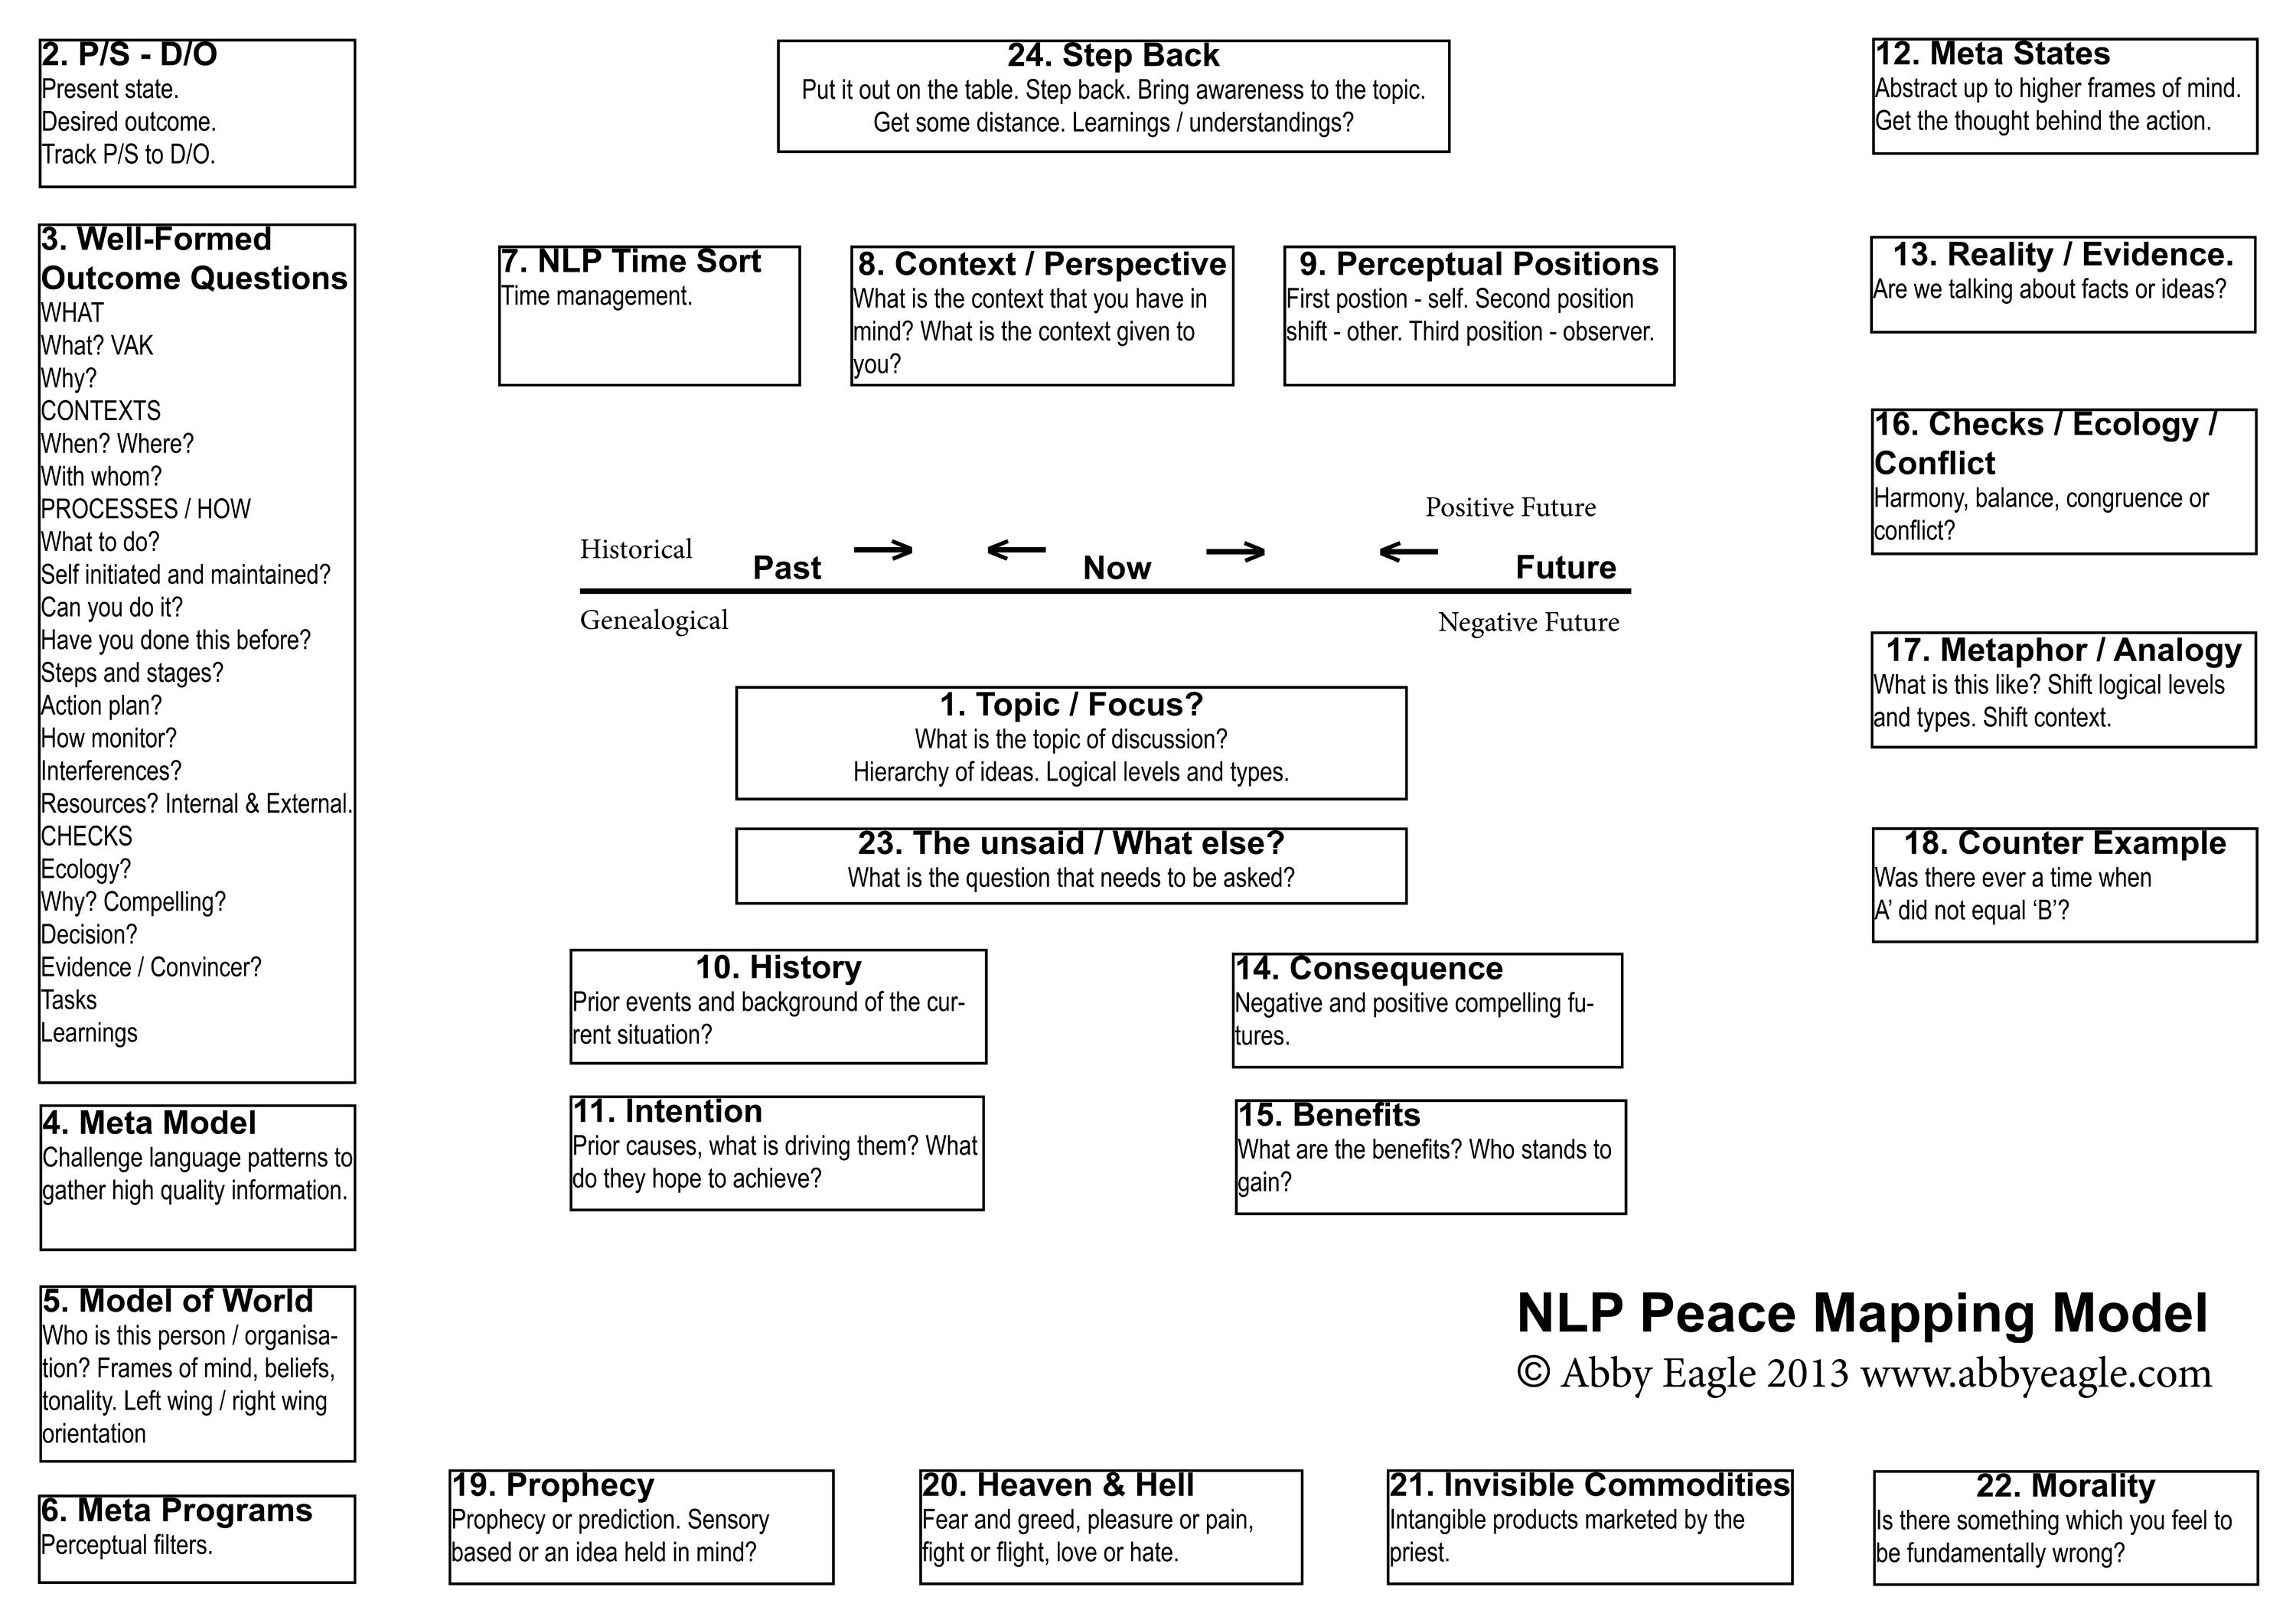 NLP Peace Mapping Model